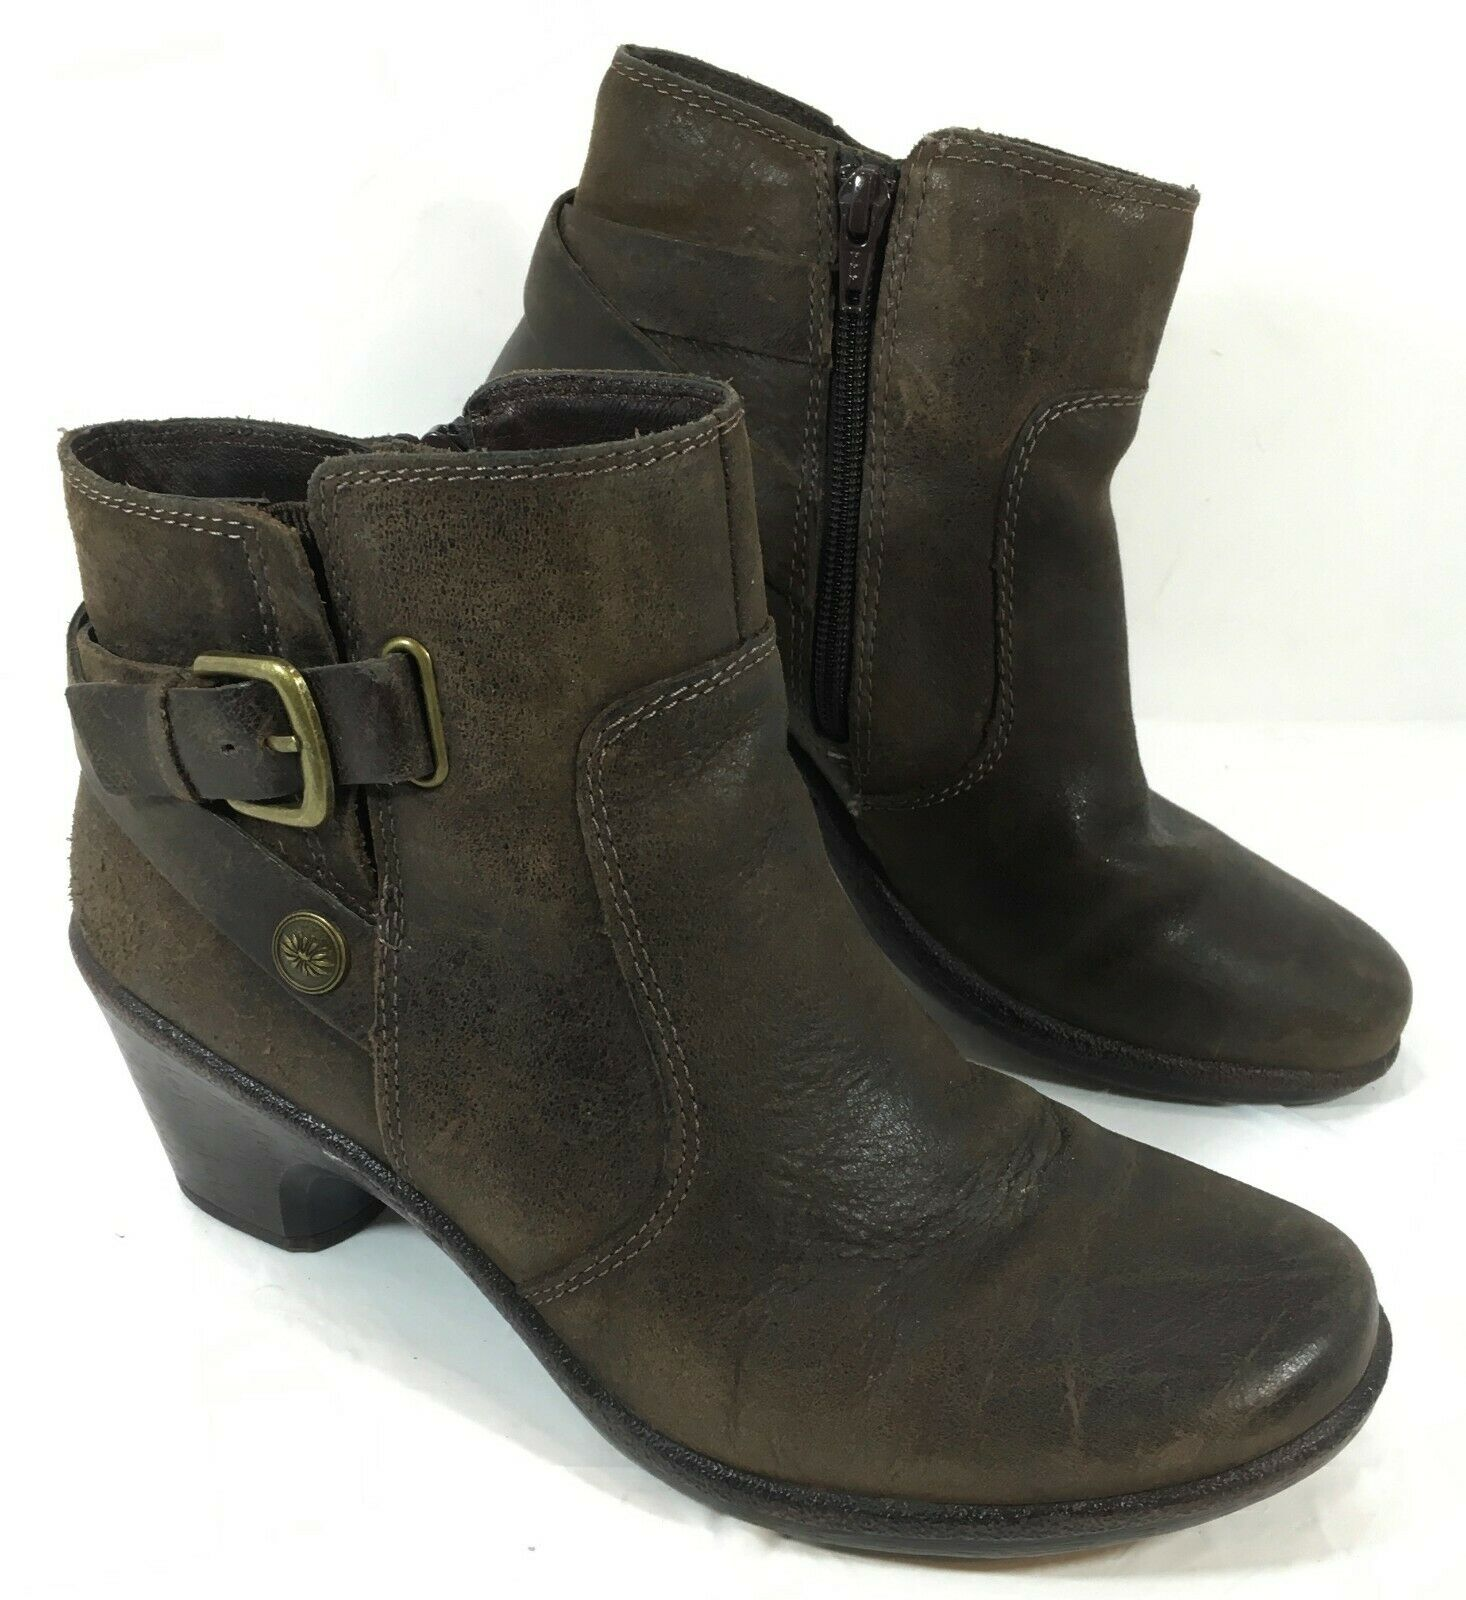 GUC Montana Belted Ankle boots Brown leather Sz 8.5 M